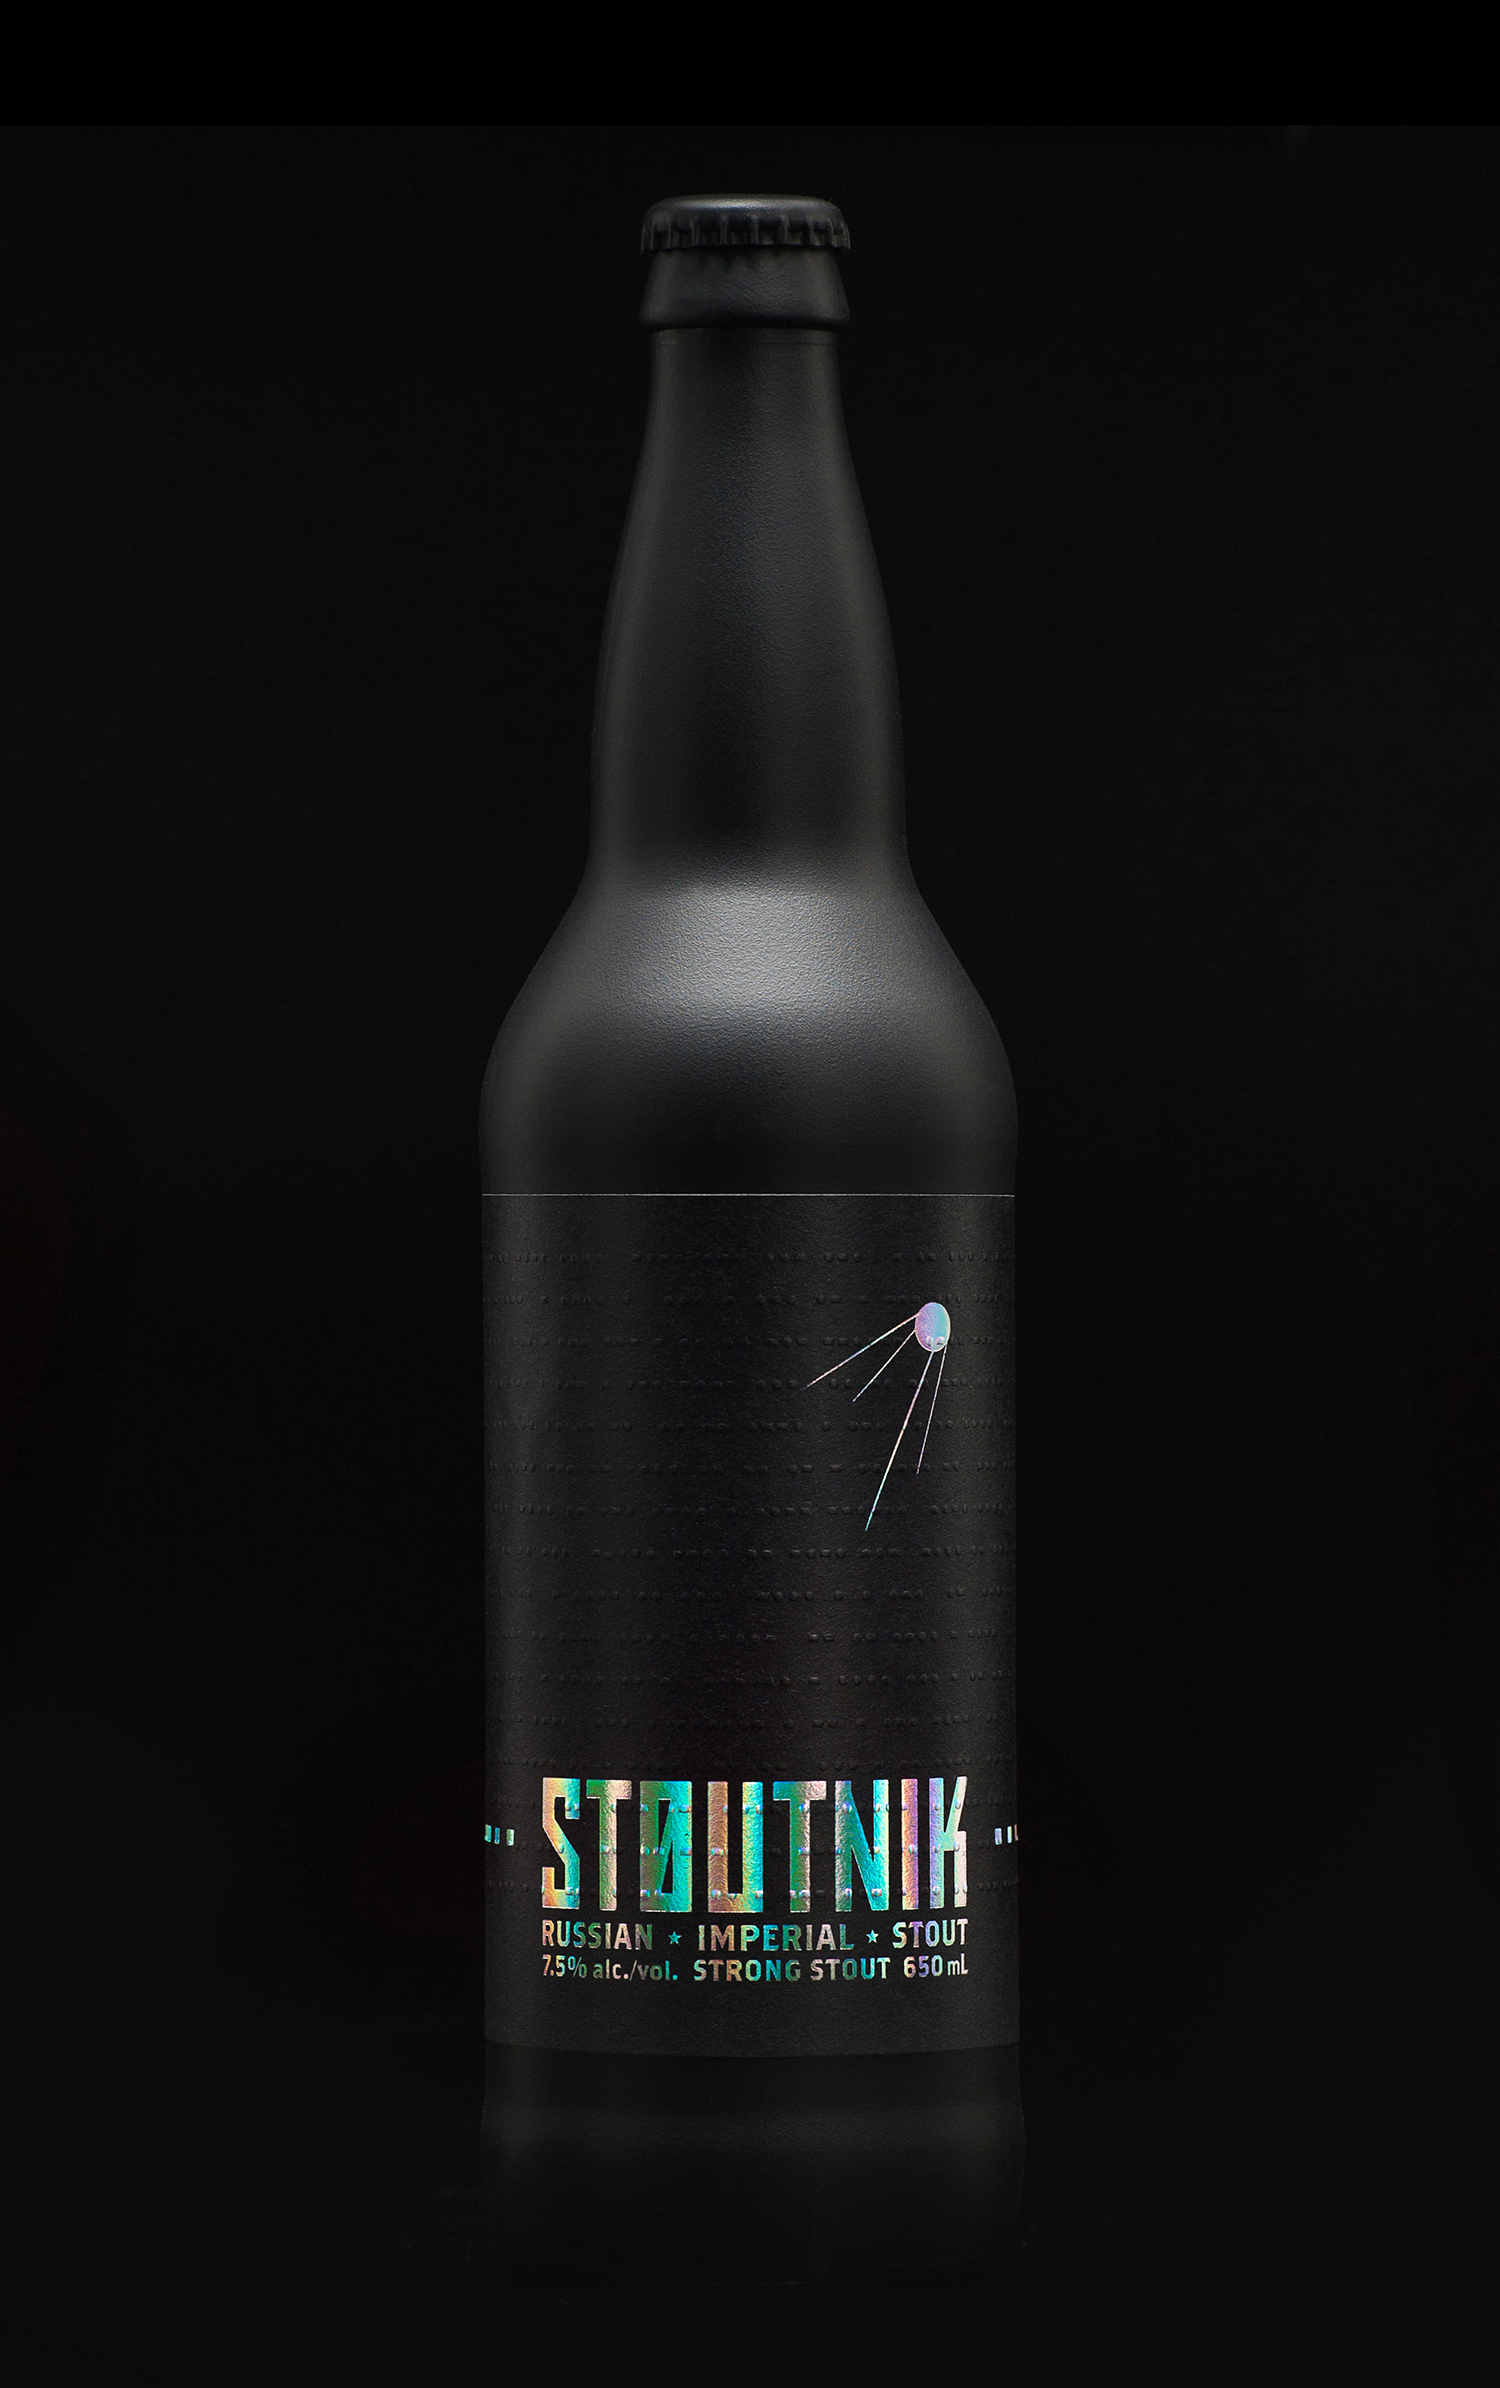 Packaging Design for Longwood Brewery's Stoutnik